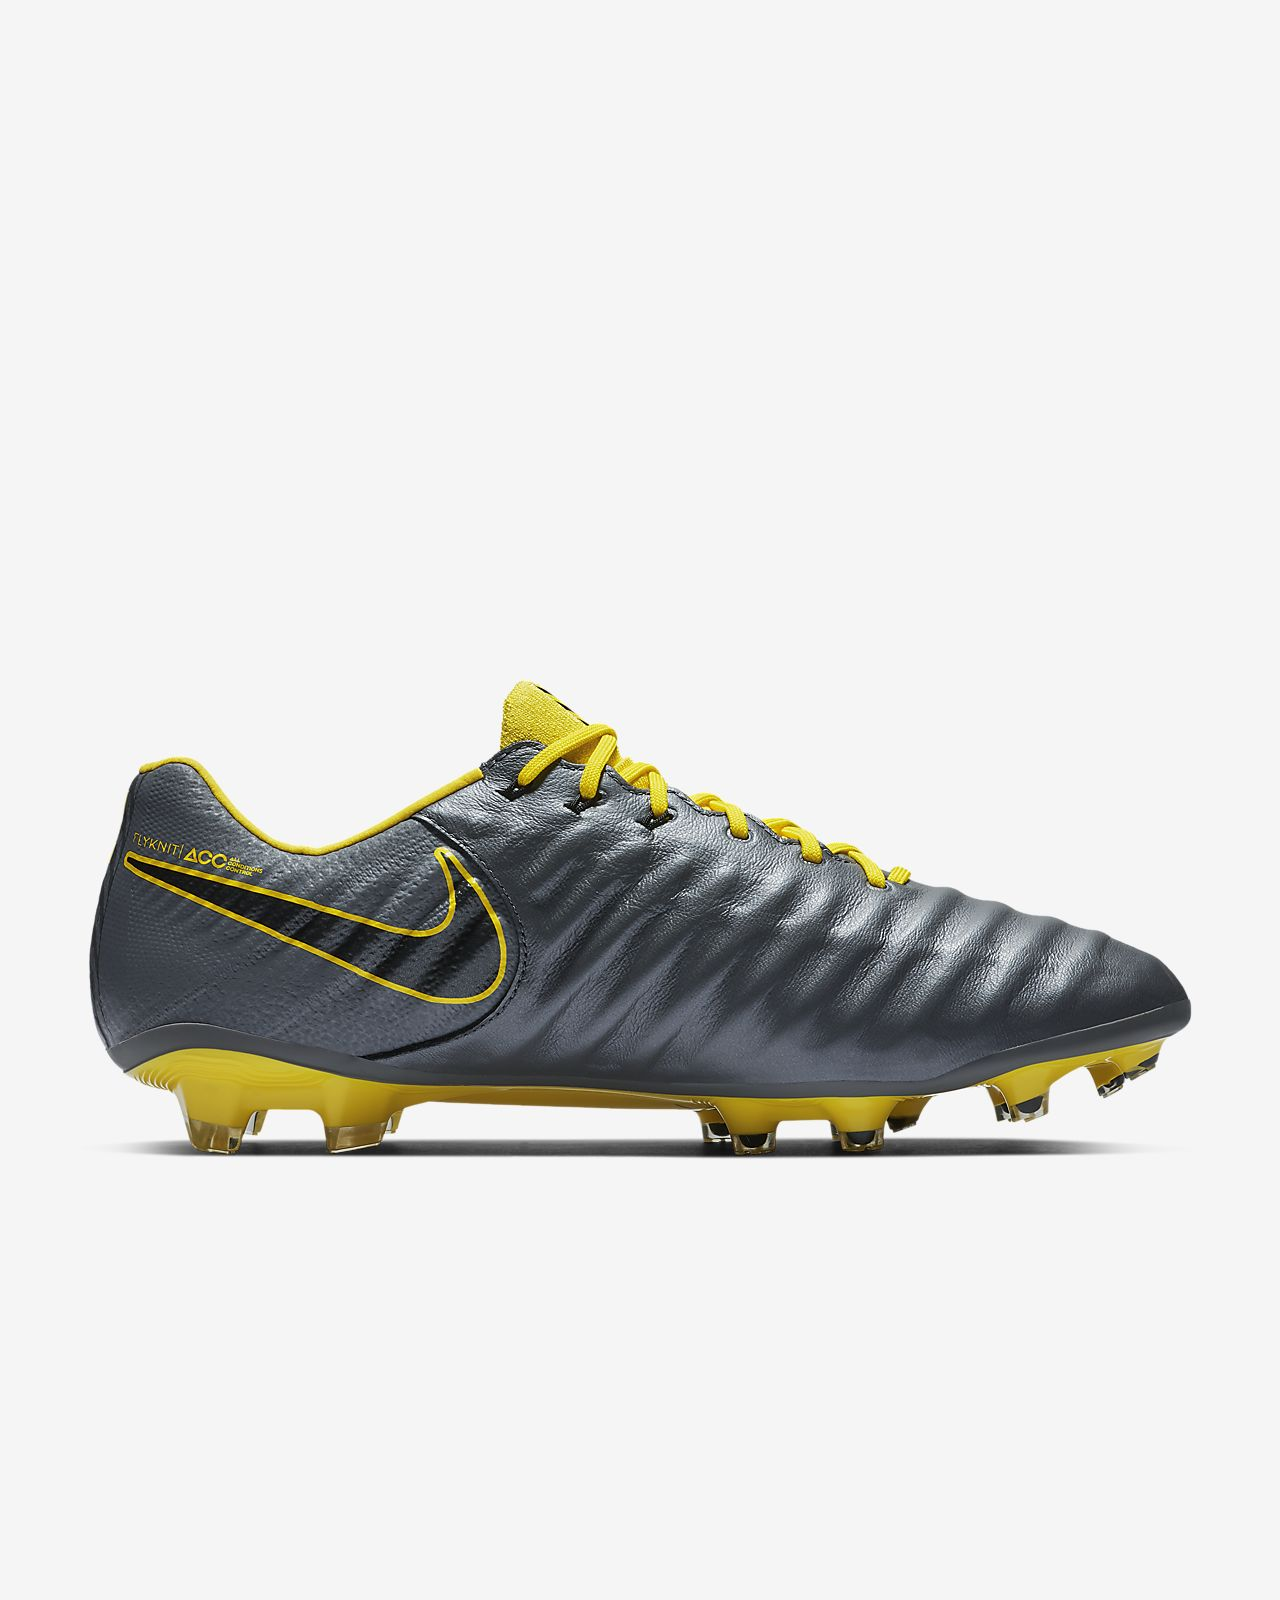 release date 0de1f 81cff ... Nike Legend 7 Elite FG Game Over Firm-Ground Football Boot